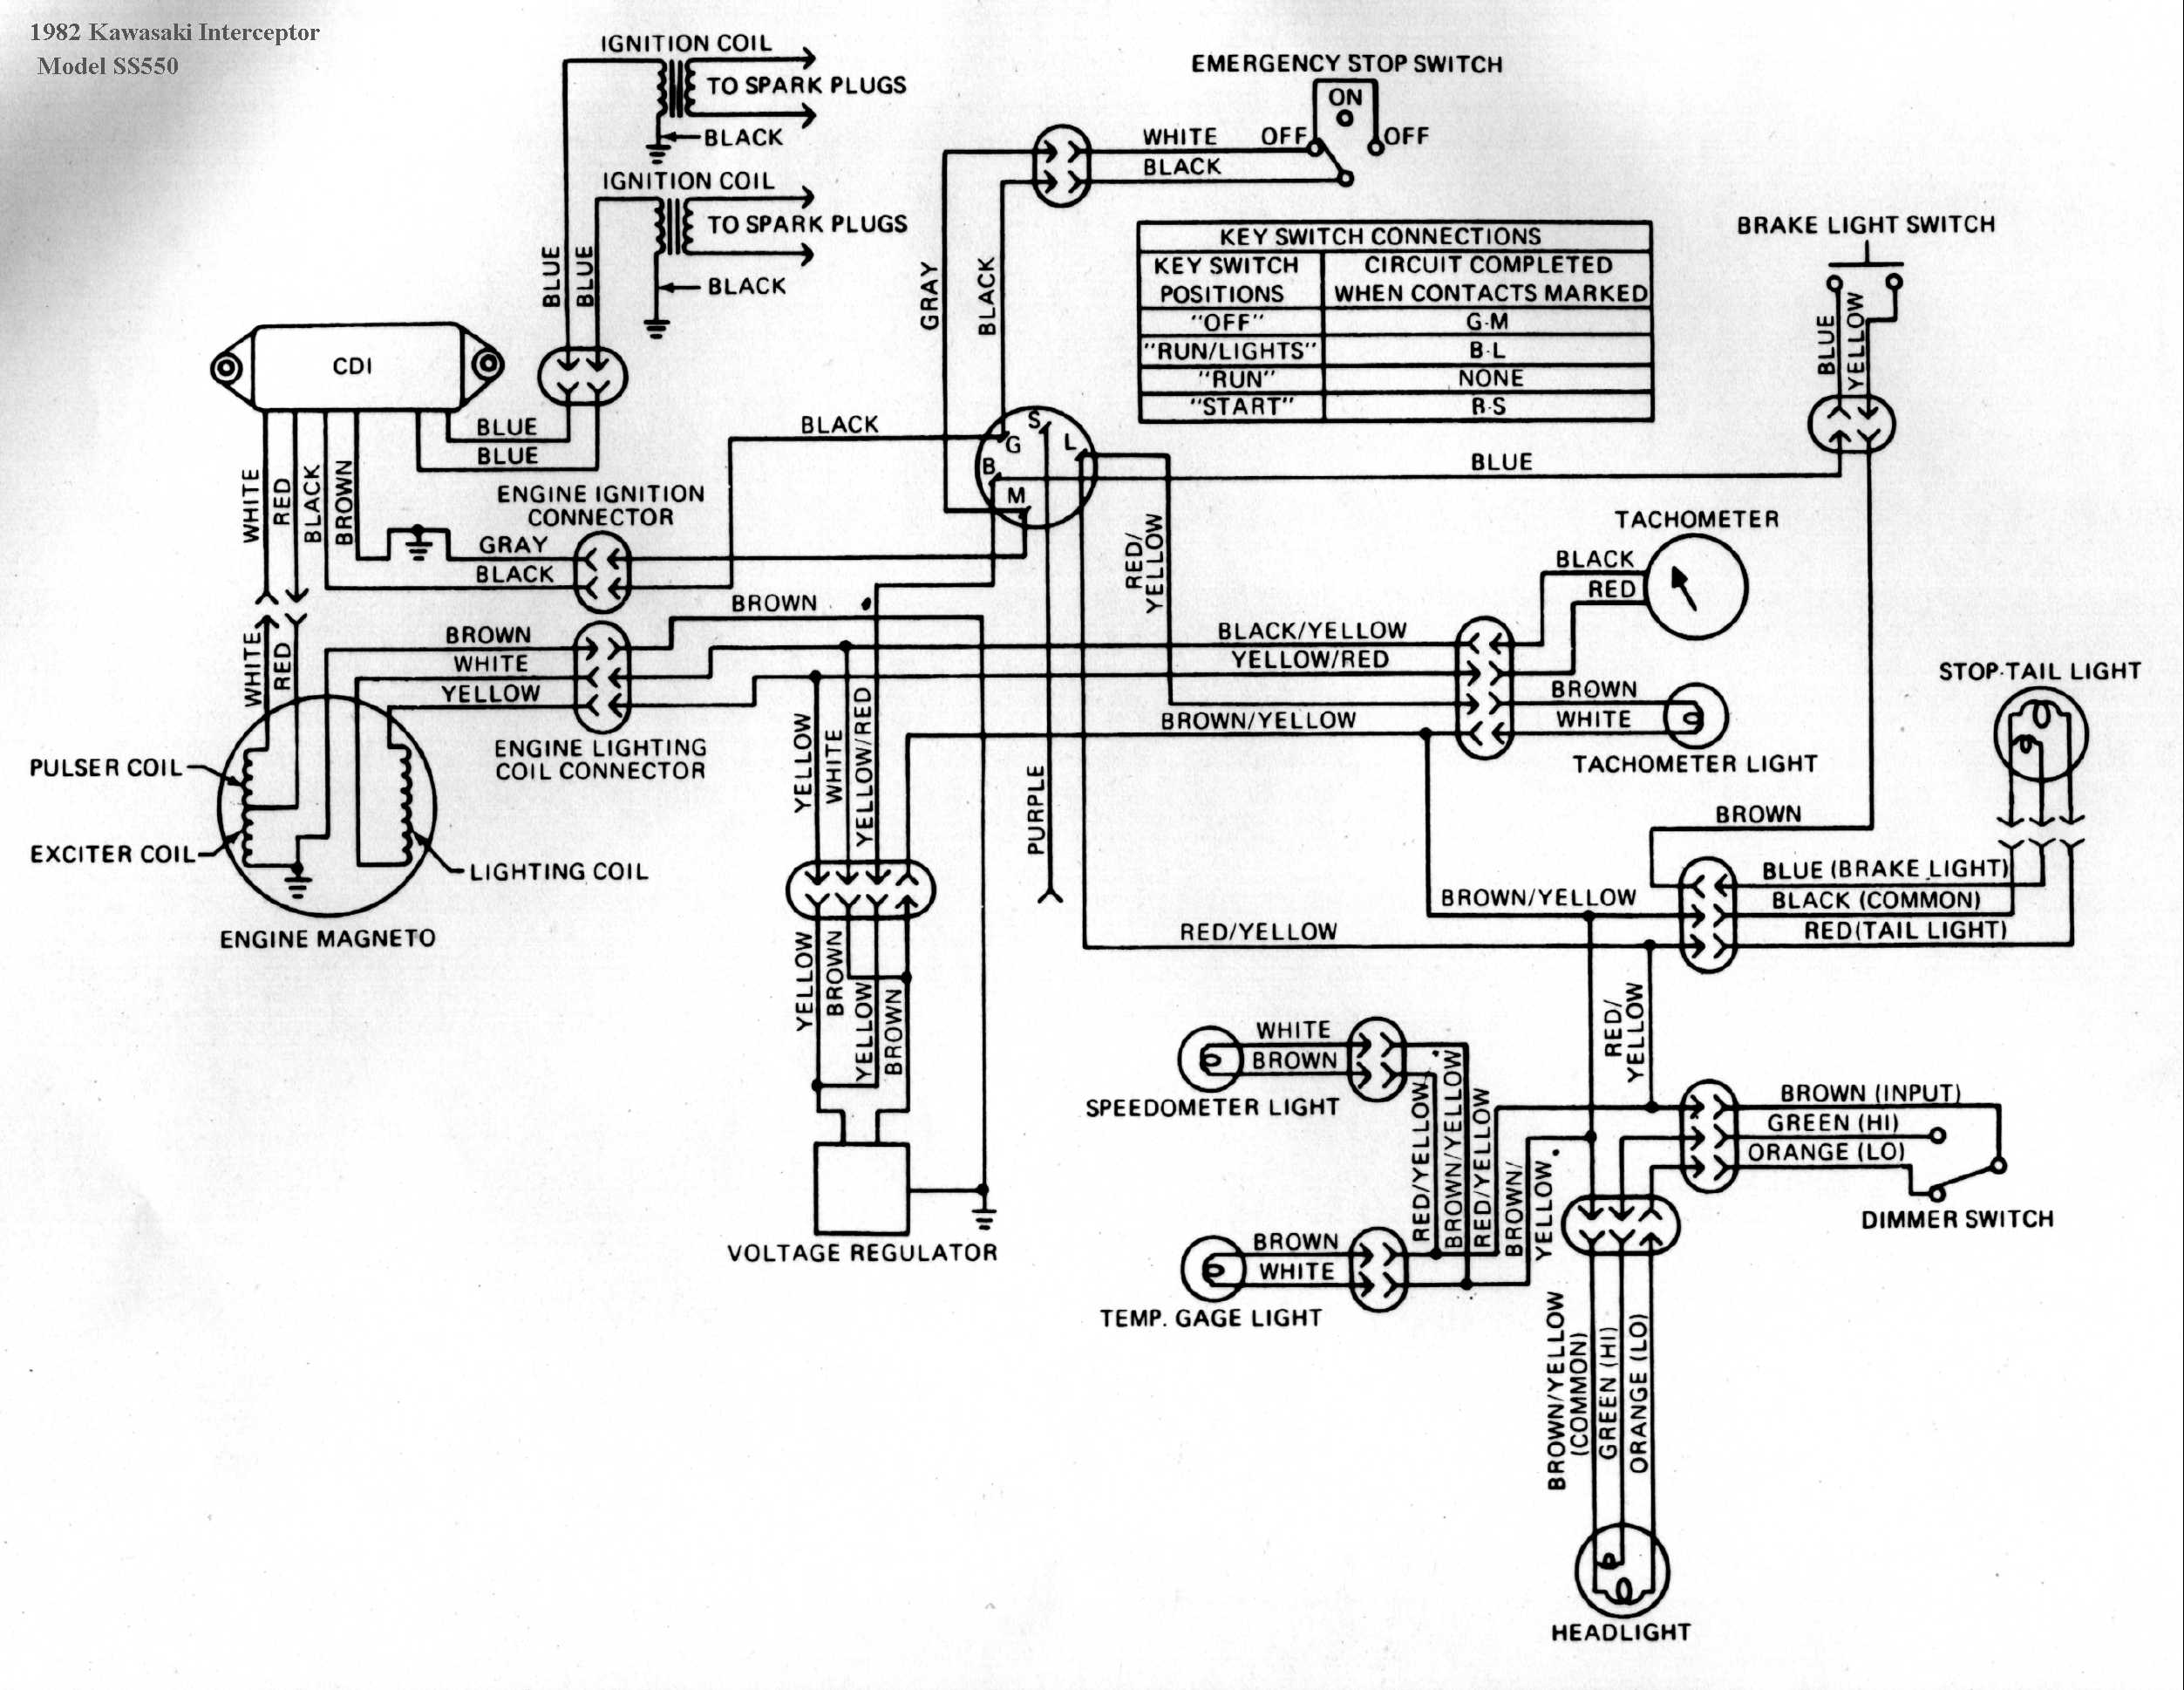 Kawasaki Kawasaki 1979 440 Diagrams 1980 Kawasaki Ltd 440 Wiring Diagram